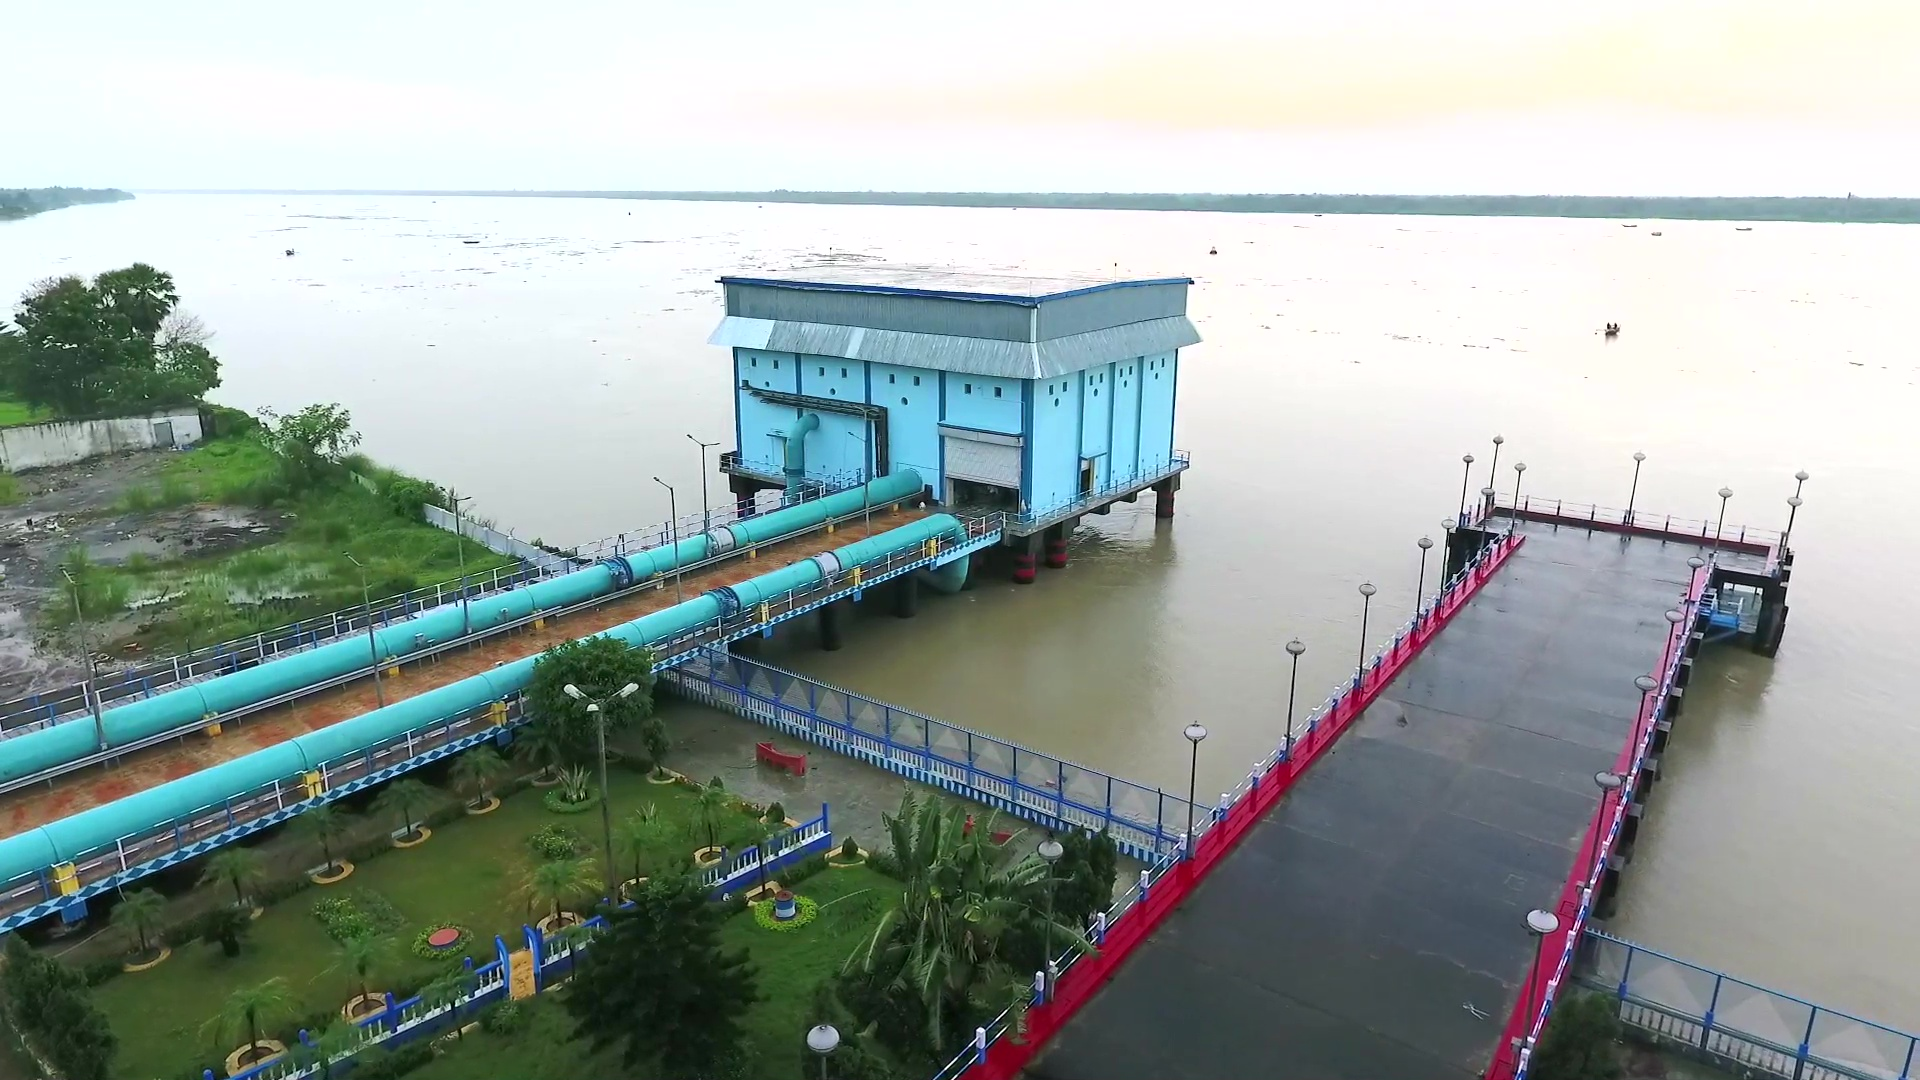 Aerial View of Intake Jetty & Raw Water Pump House on the Bhagirathi of a Piped Water Supply Scheme